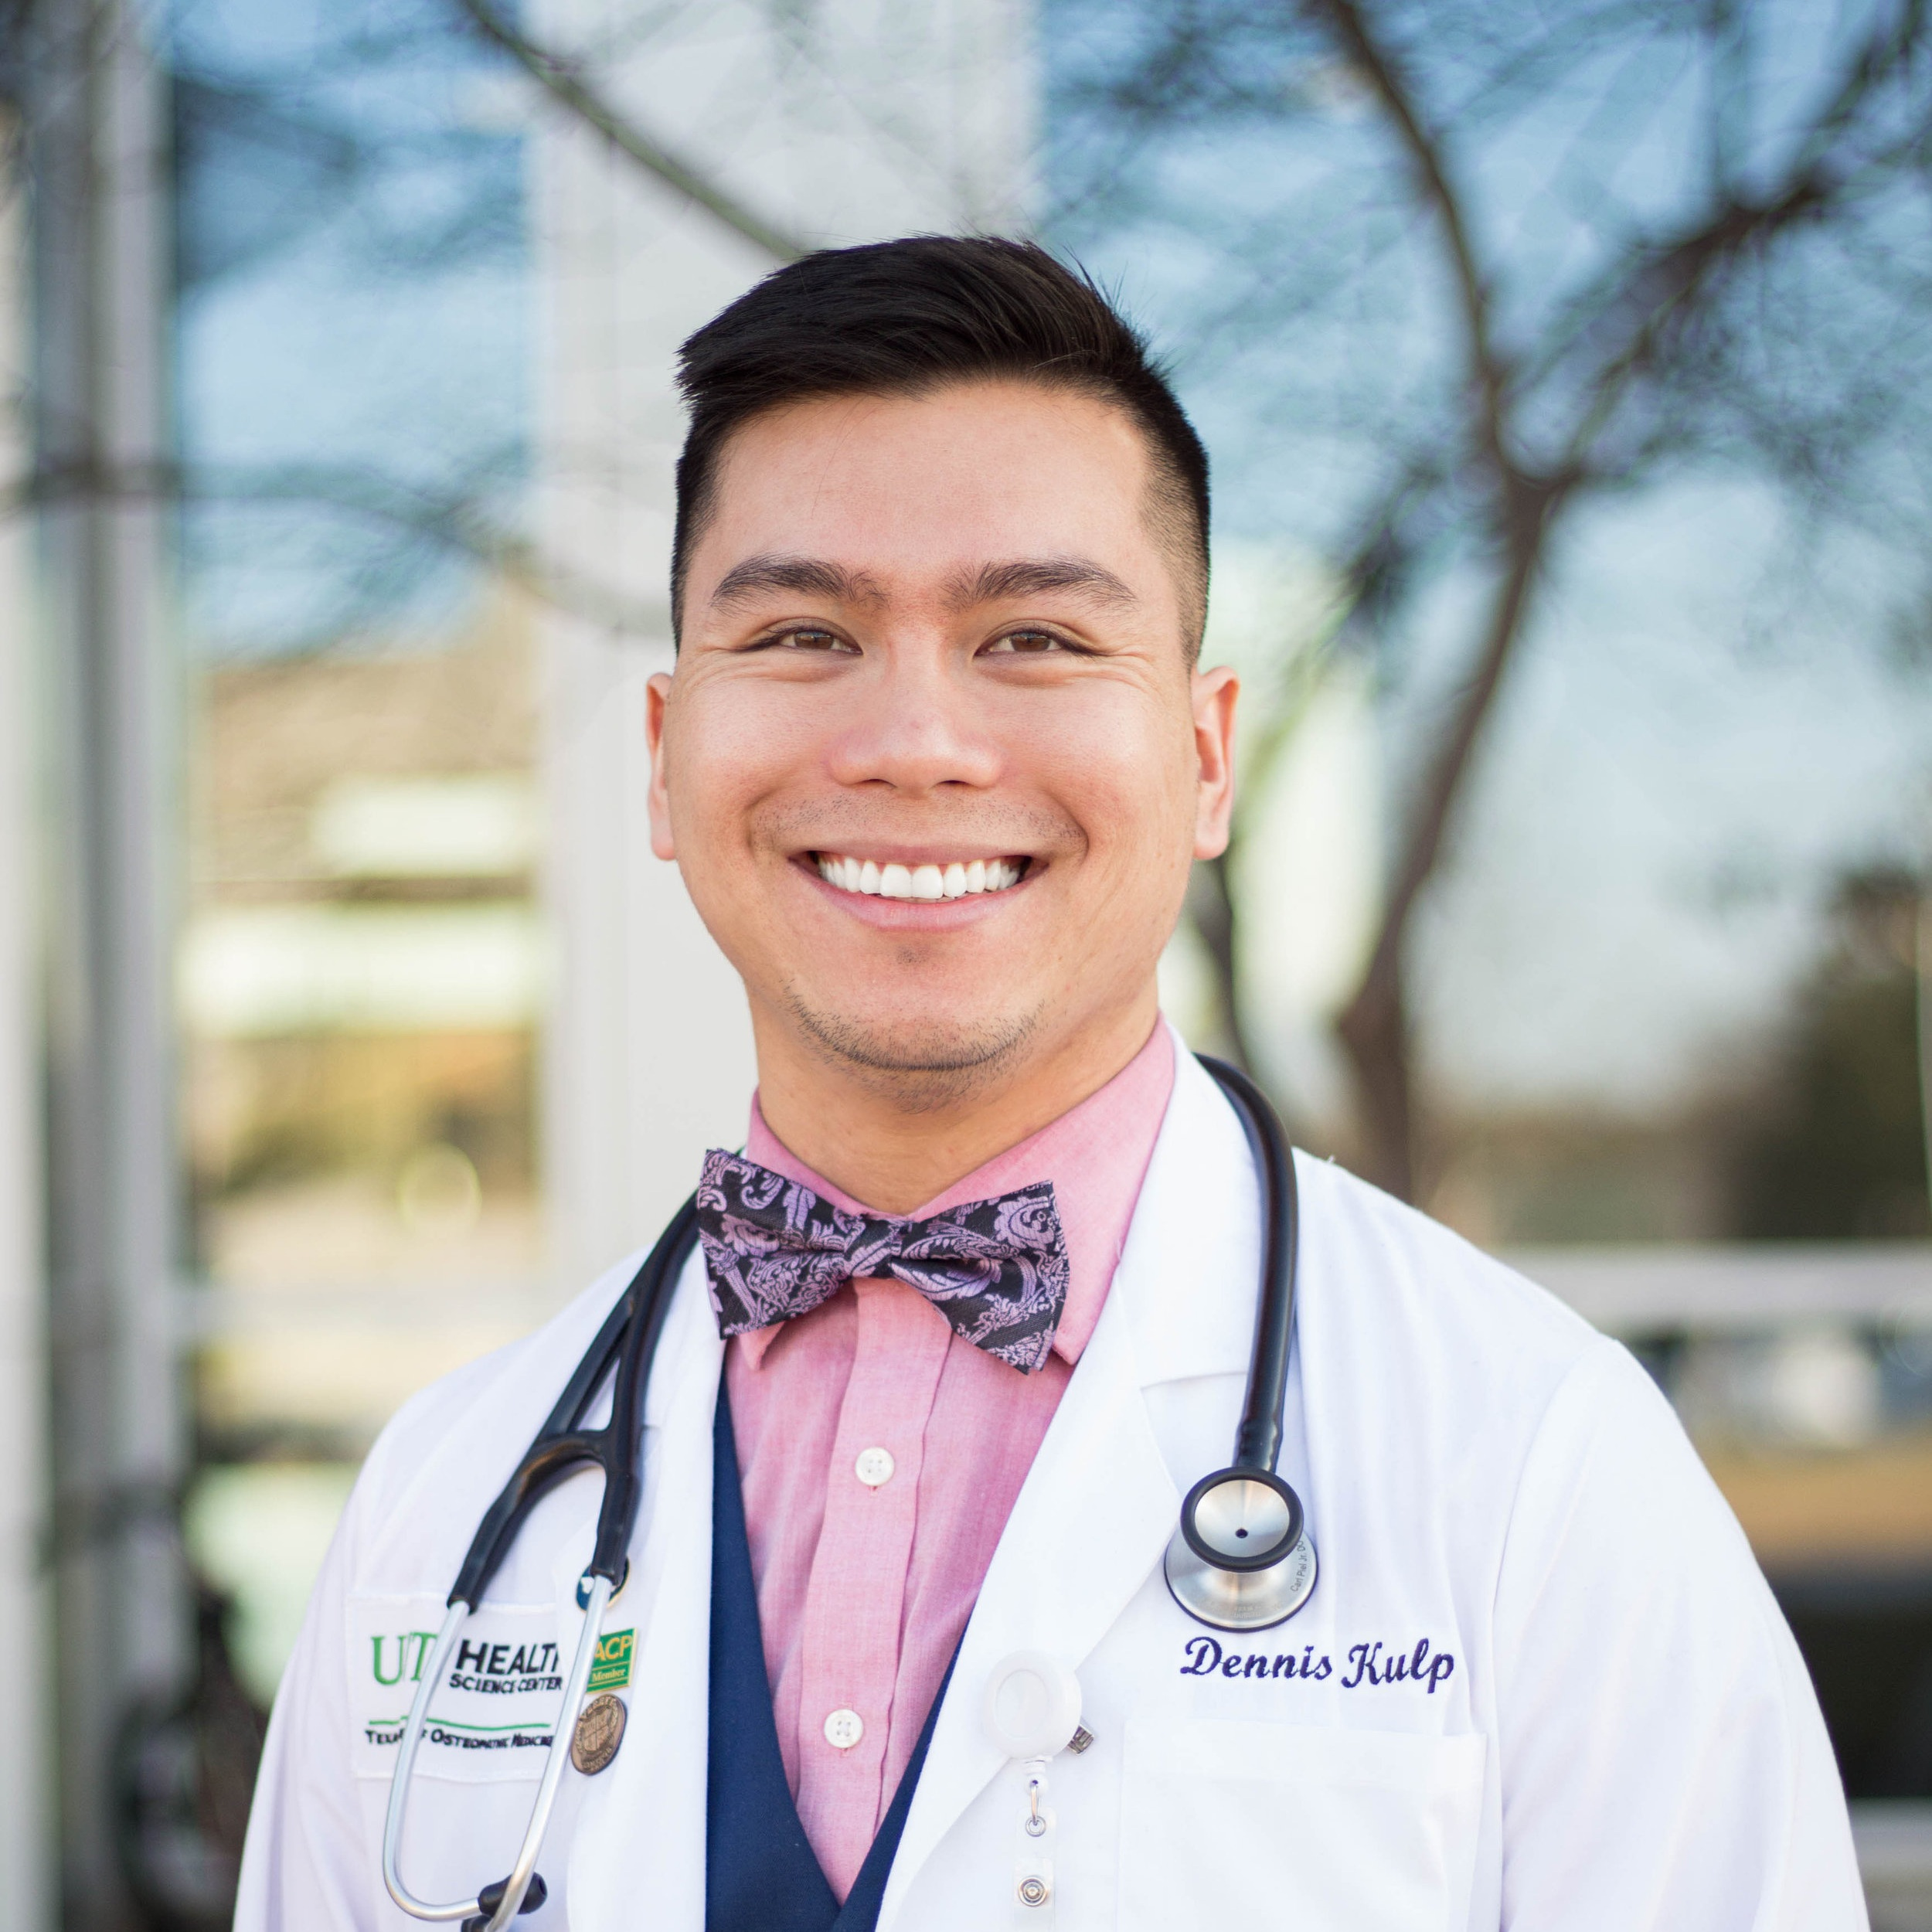 Dennis Kulp, OMS-2, Texas College of Osteopathic Medicine